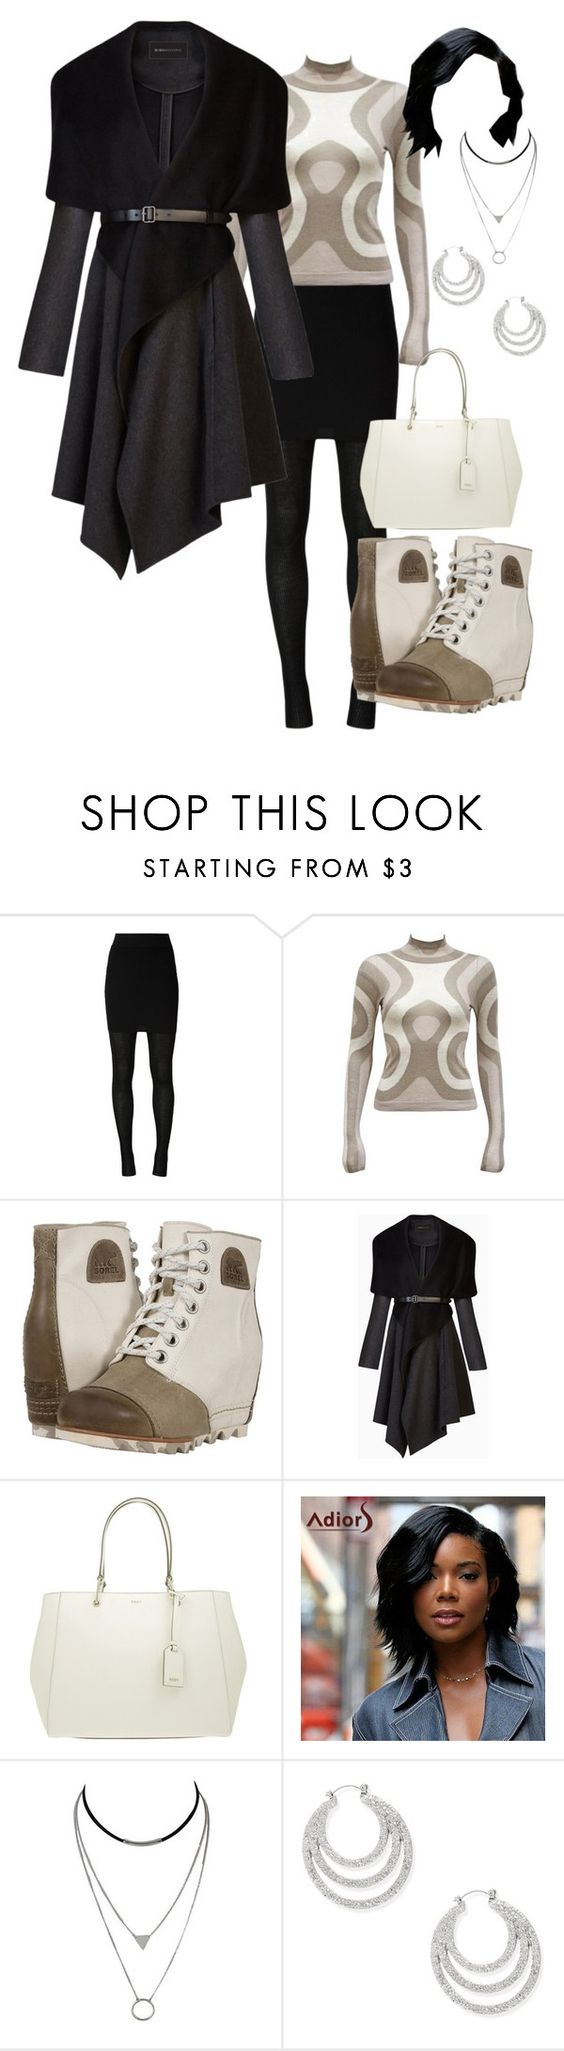 """Beige"" by geminificently ❤ liked on Polyvore featuring Dolce&Gabbana, Alexander McQueen, SOREL, BCBGMAXAZRIA, DKNY and Steve Madden"